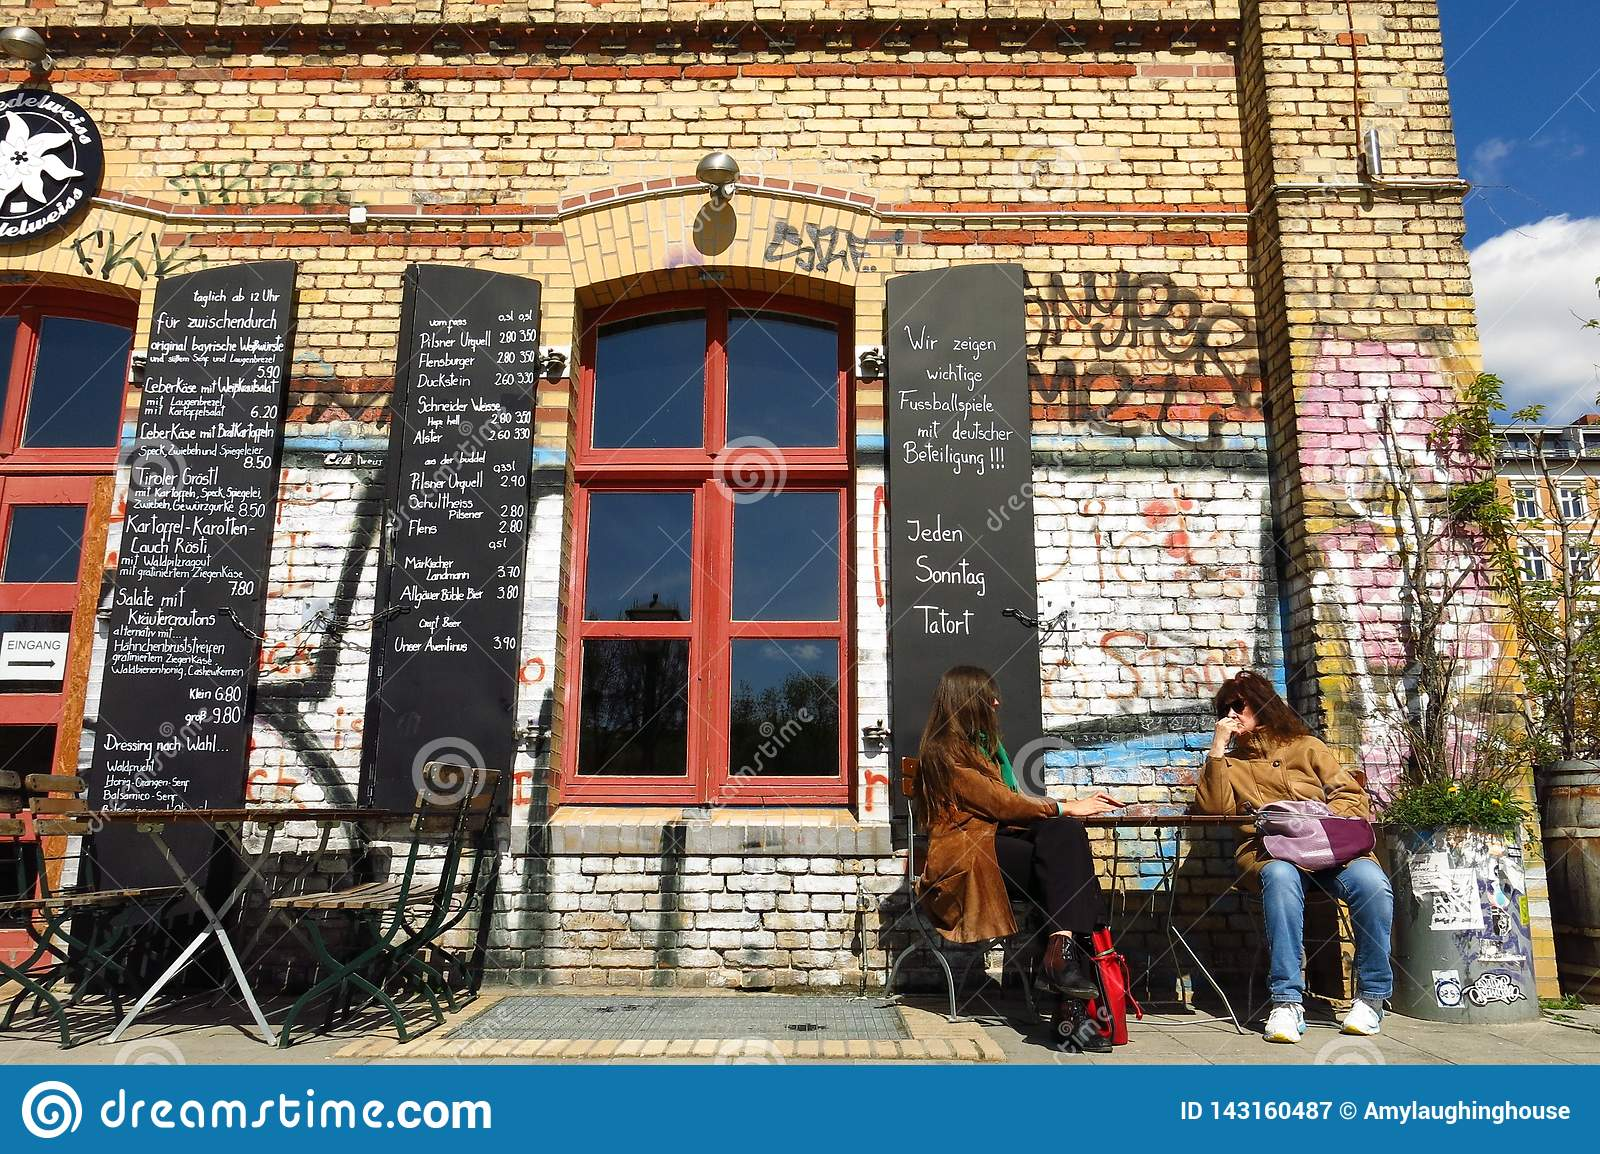 Berlin Graffiti Wall Cafe In Kreuzberg Editorial Photography Image Of Color Lifestyle 143160487